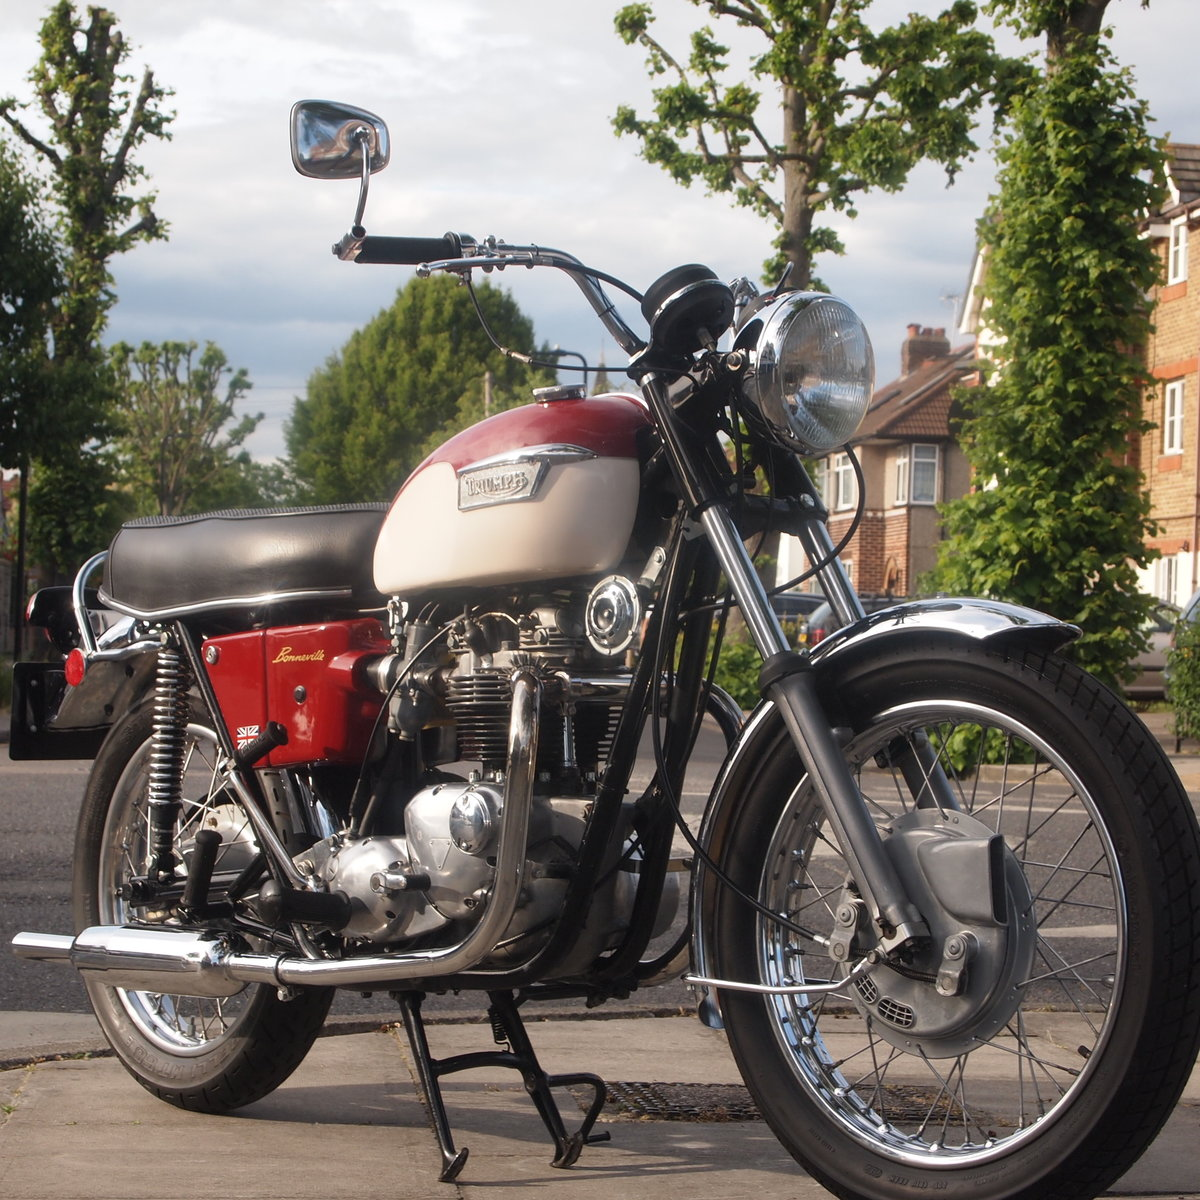 1971 Triumph T120R 650 Bonneville, RESERVED FOR RICHARD. SOLD (picture 1 of 6)